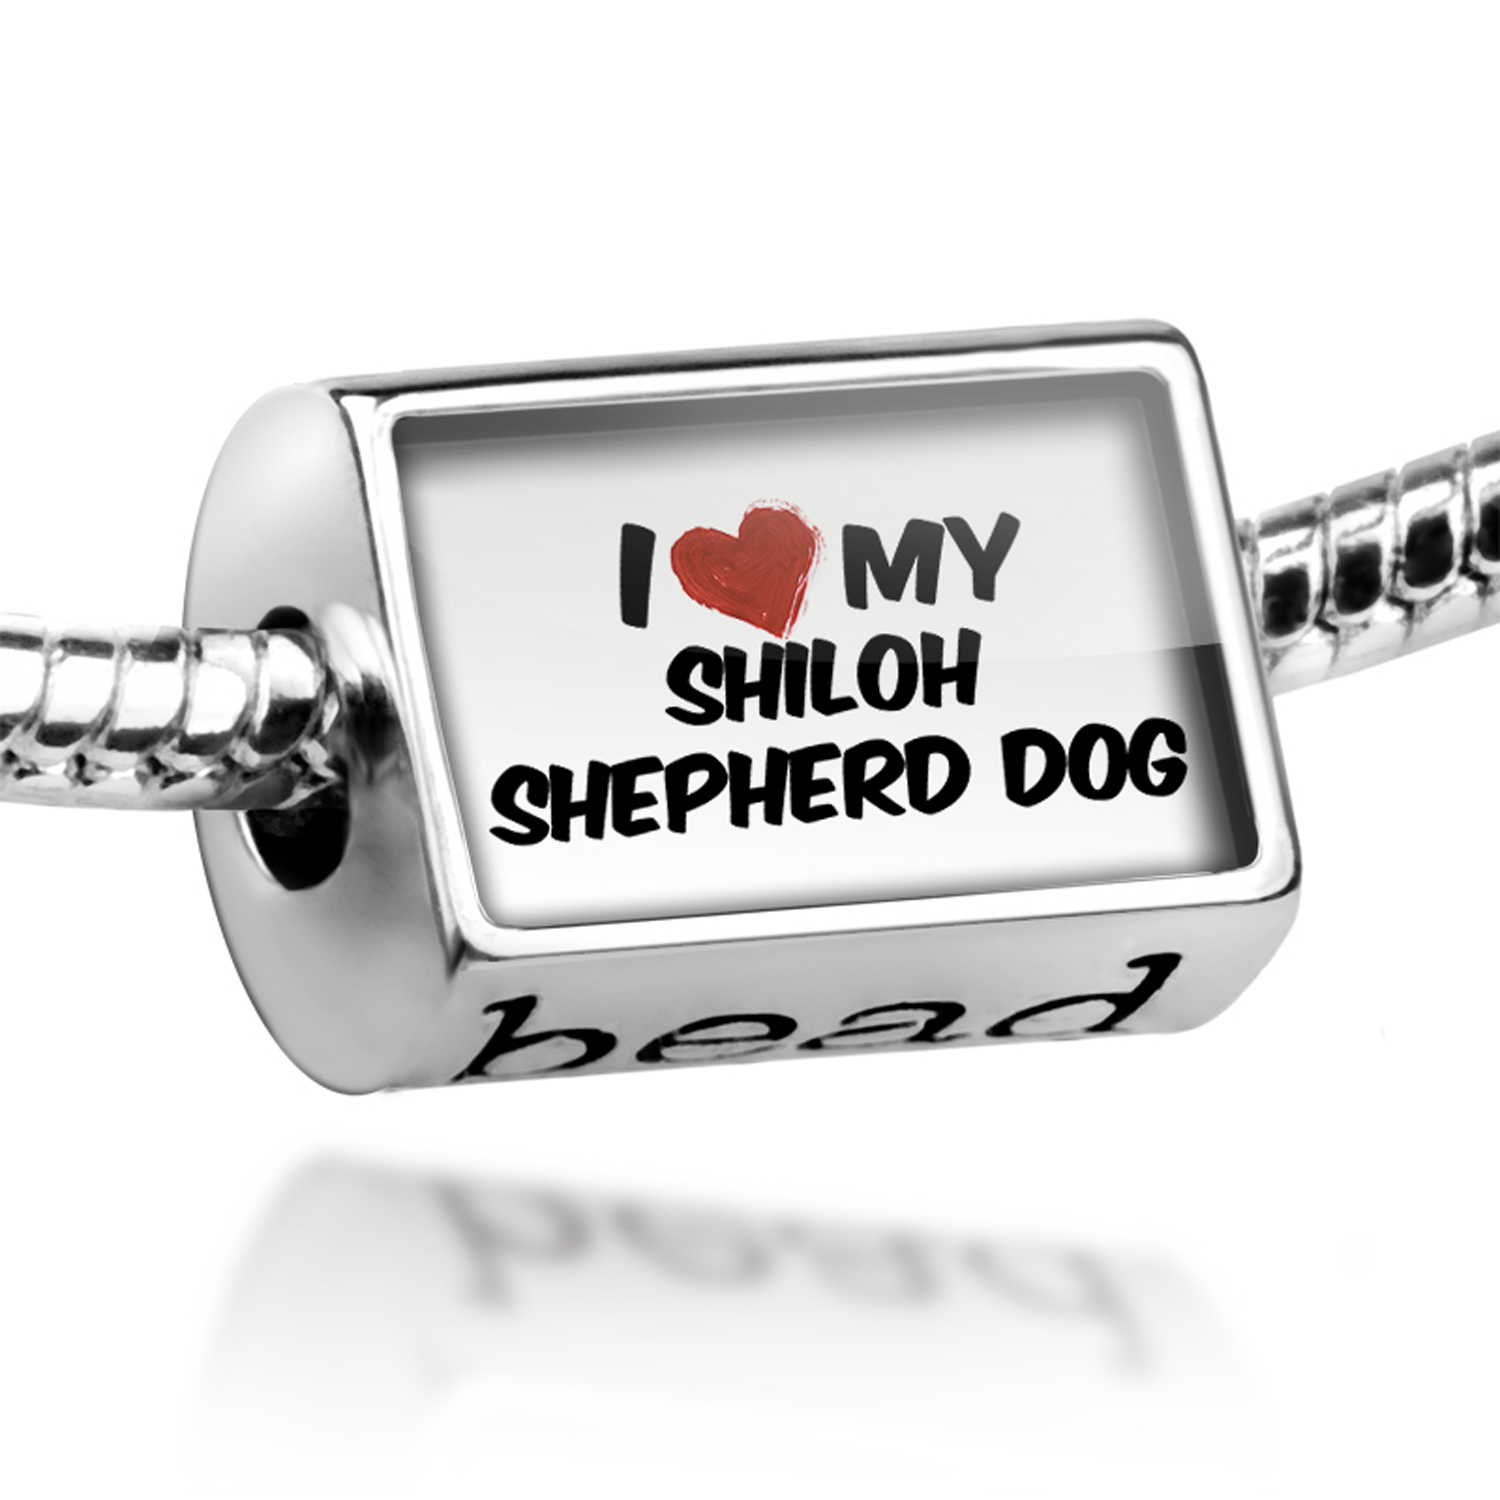 Bead I Love my Shiloh Shepherd Dog from United States Charm Fits All European Bracelets